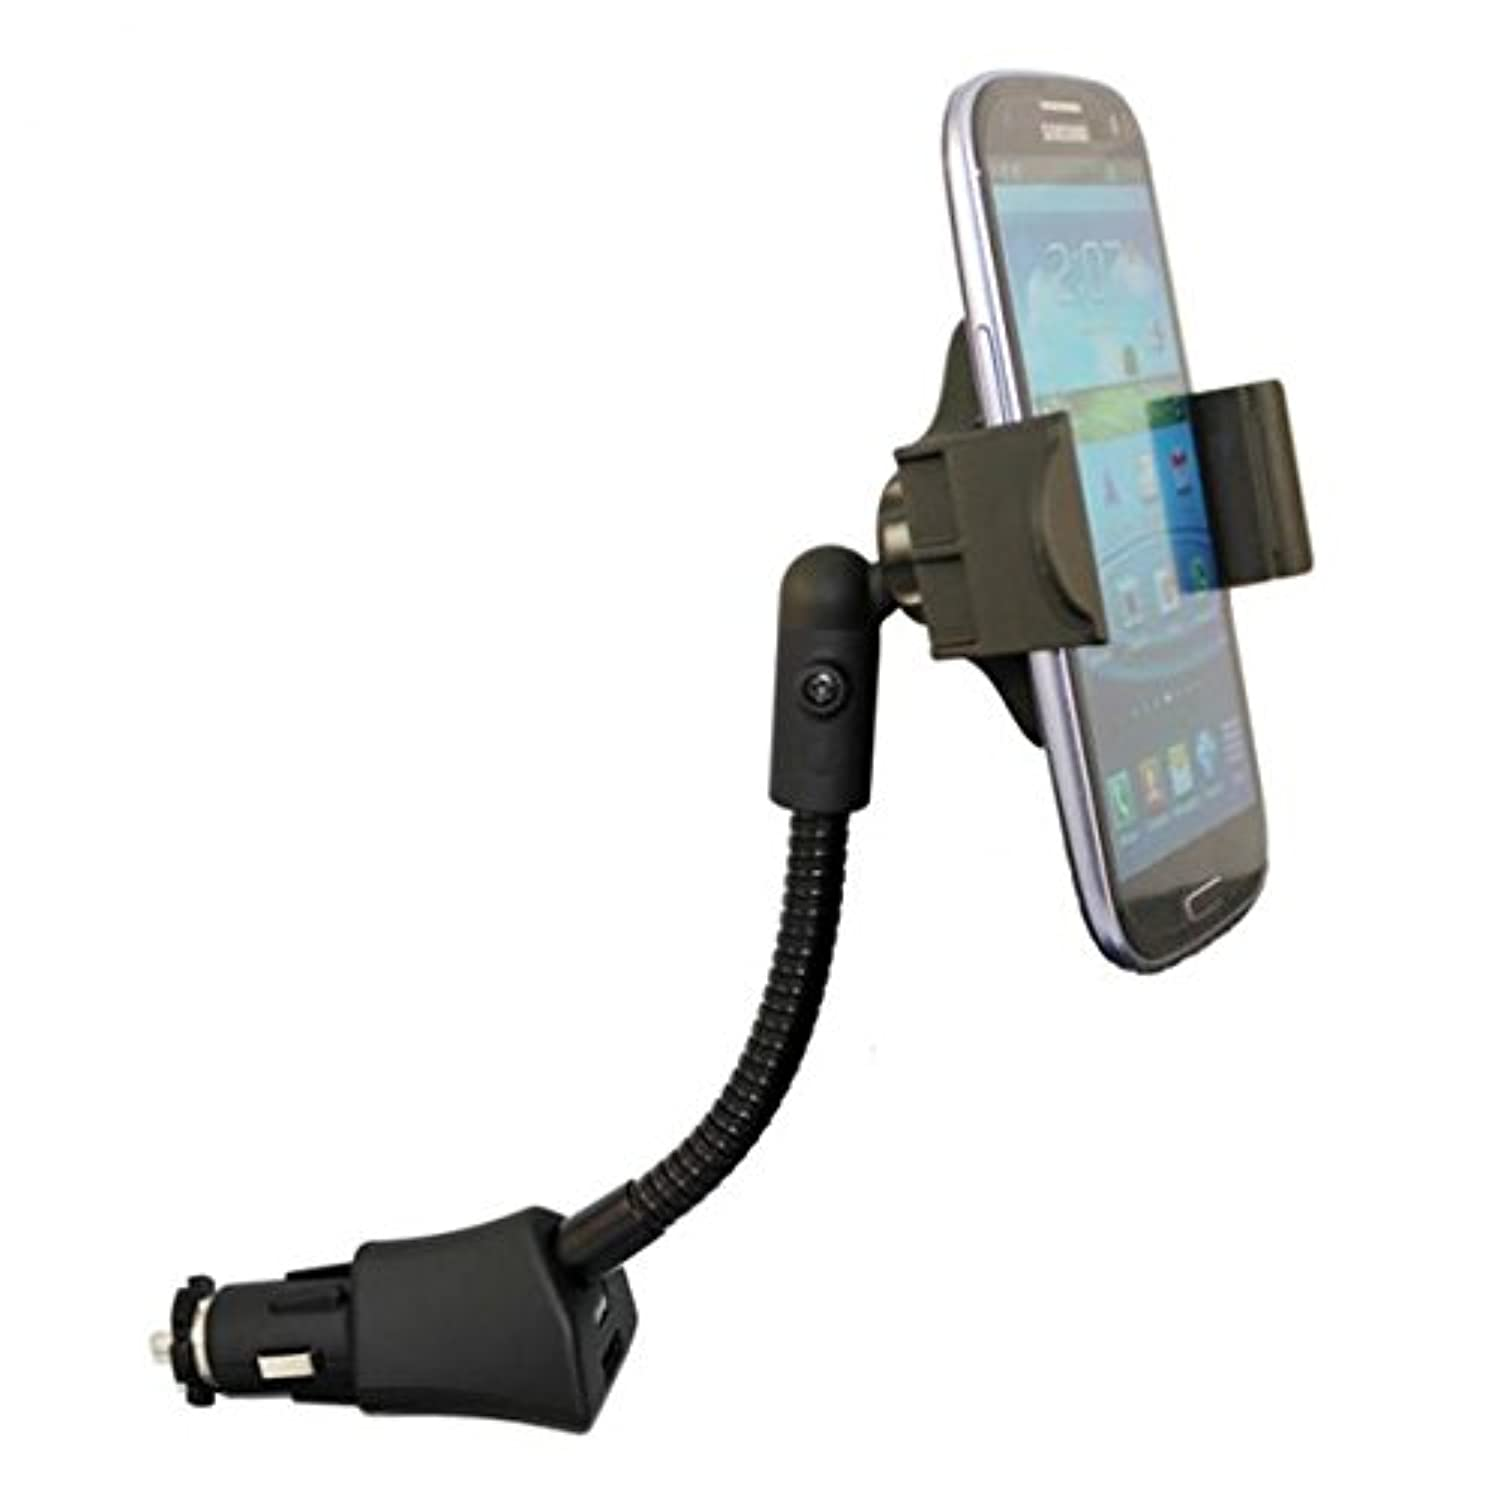 車マウント充電ソケットホルダーUSBポートDock Cradle Gooseneck Swivel for AT & T Samsung Galaxy s8 – At & t Samsung Galaxy s8アクティブ – At & t Samsung Galaxy s8 + – AT & T Samsung Galaxy s9 (g960uzpaatt)